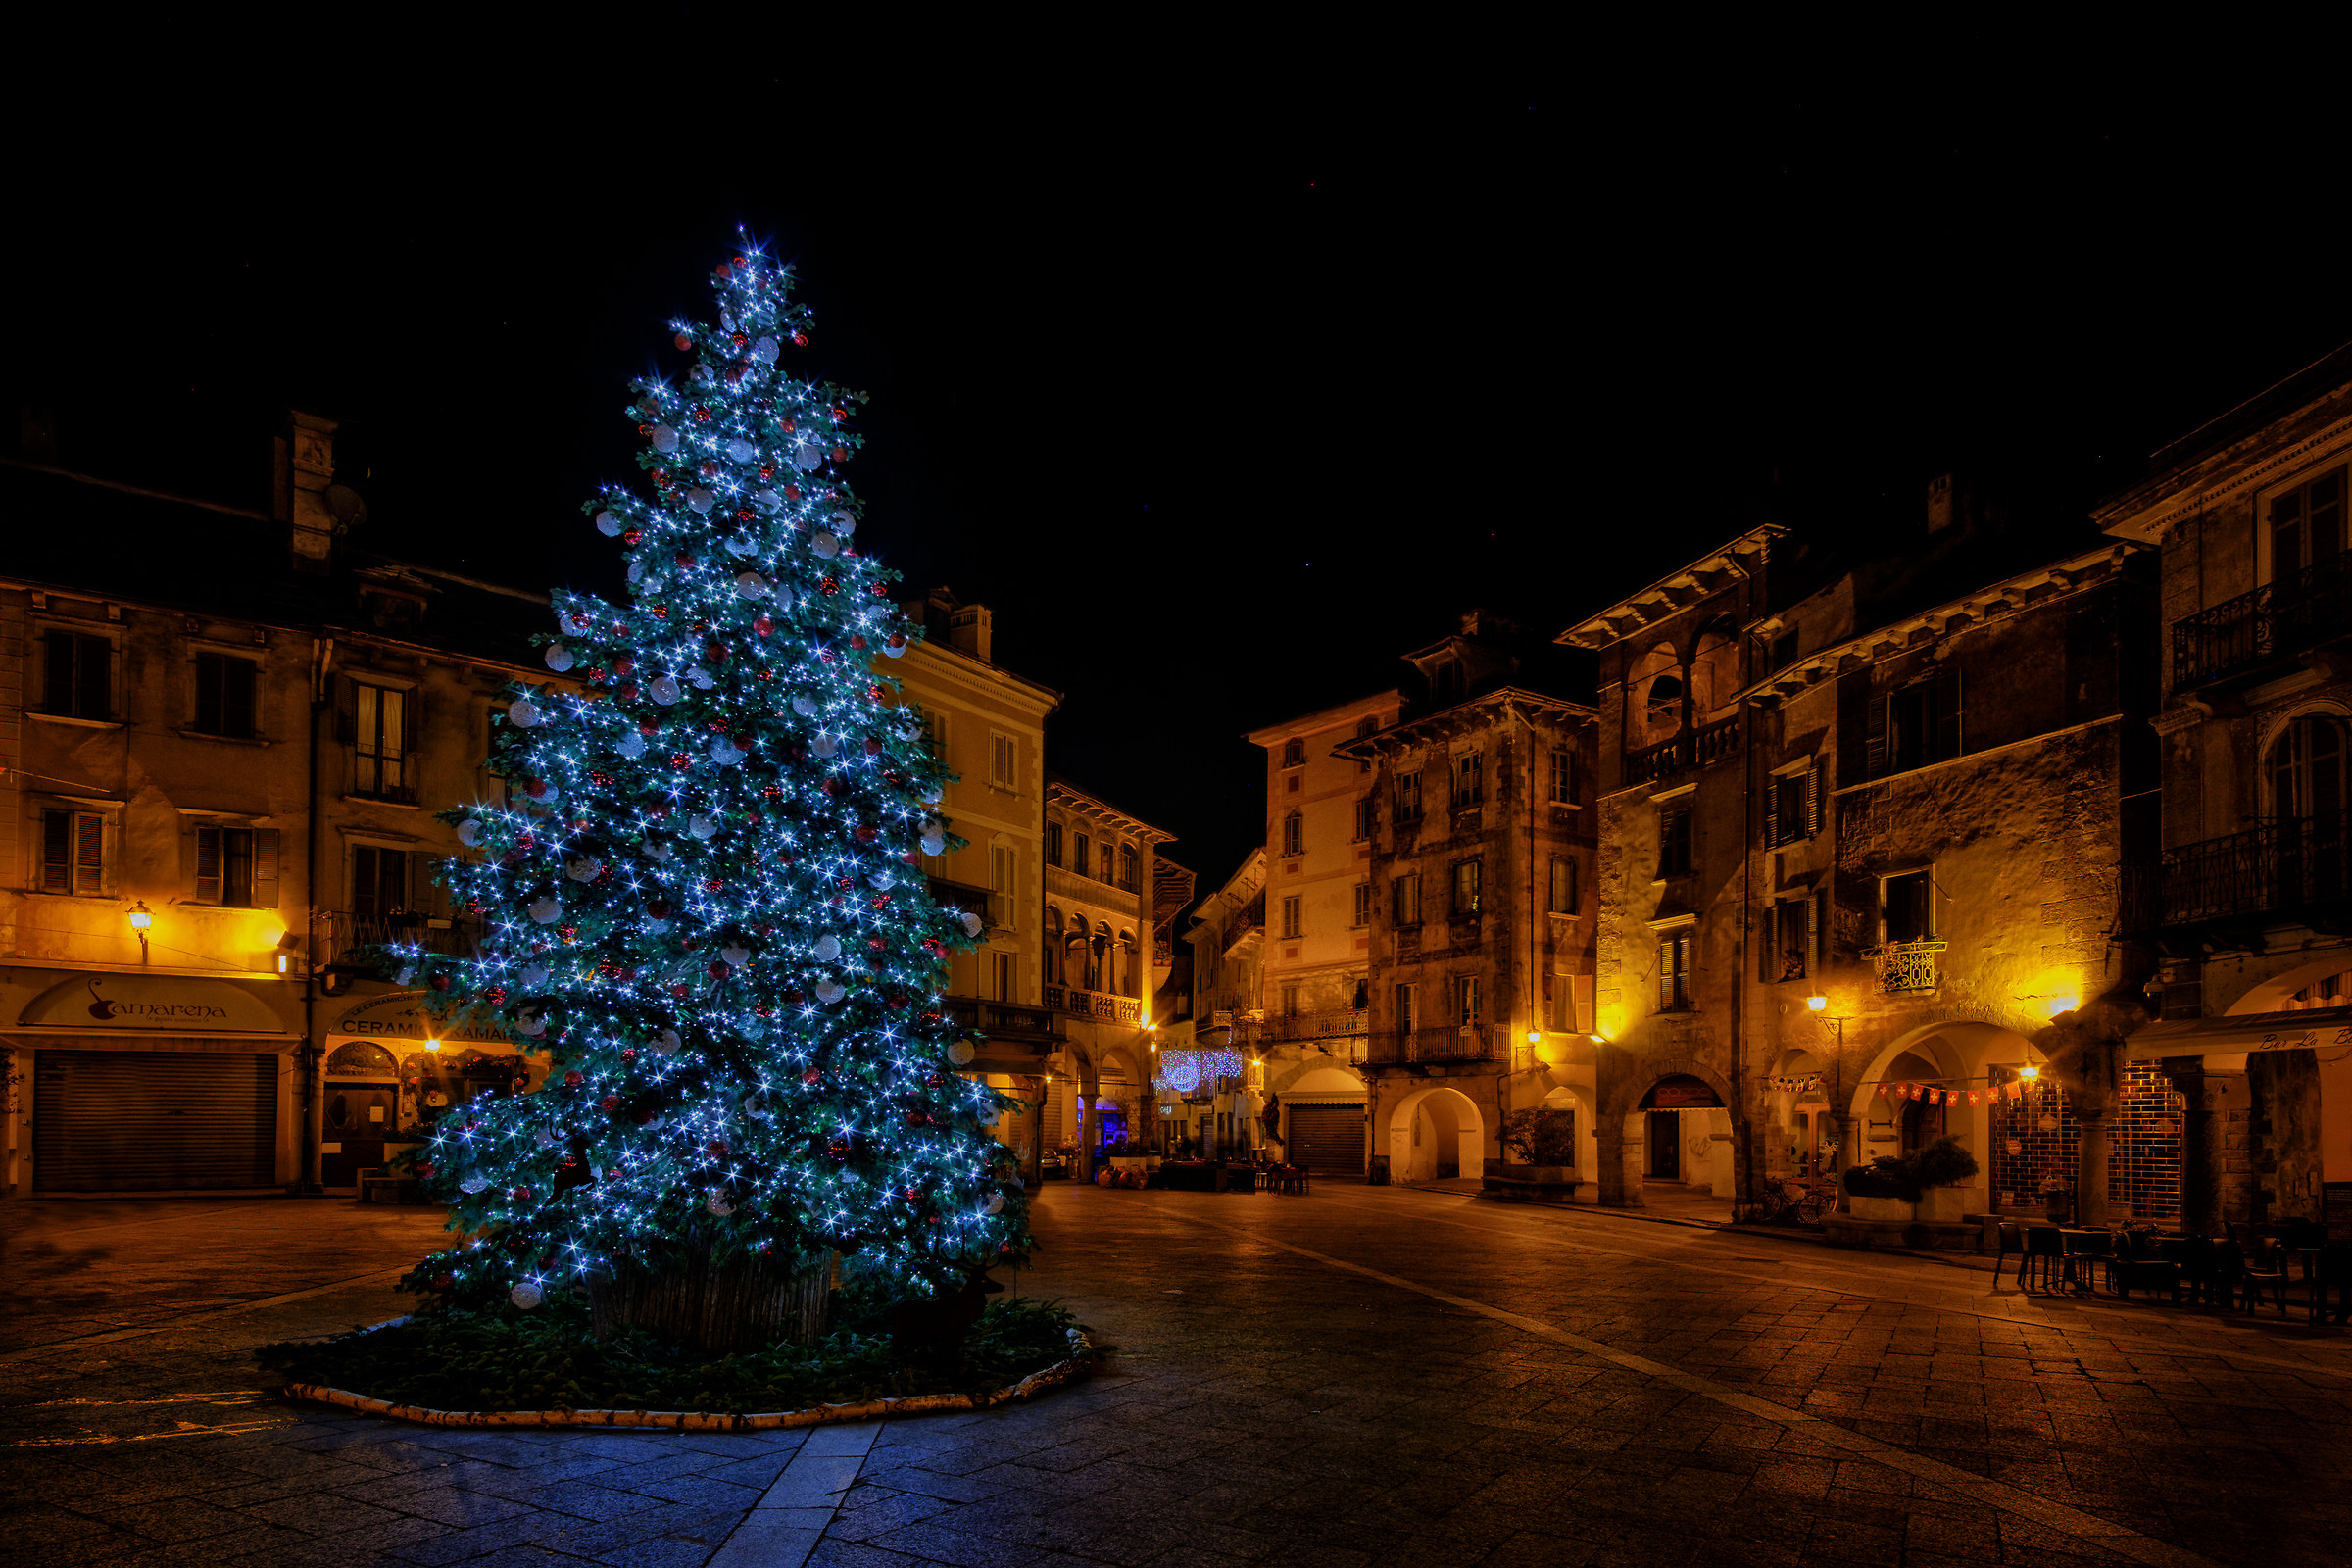 Christmas in Piazza Marcato...